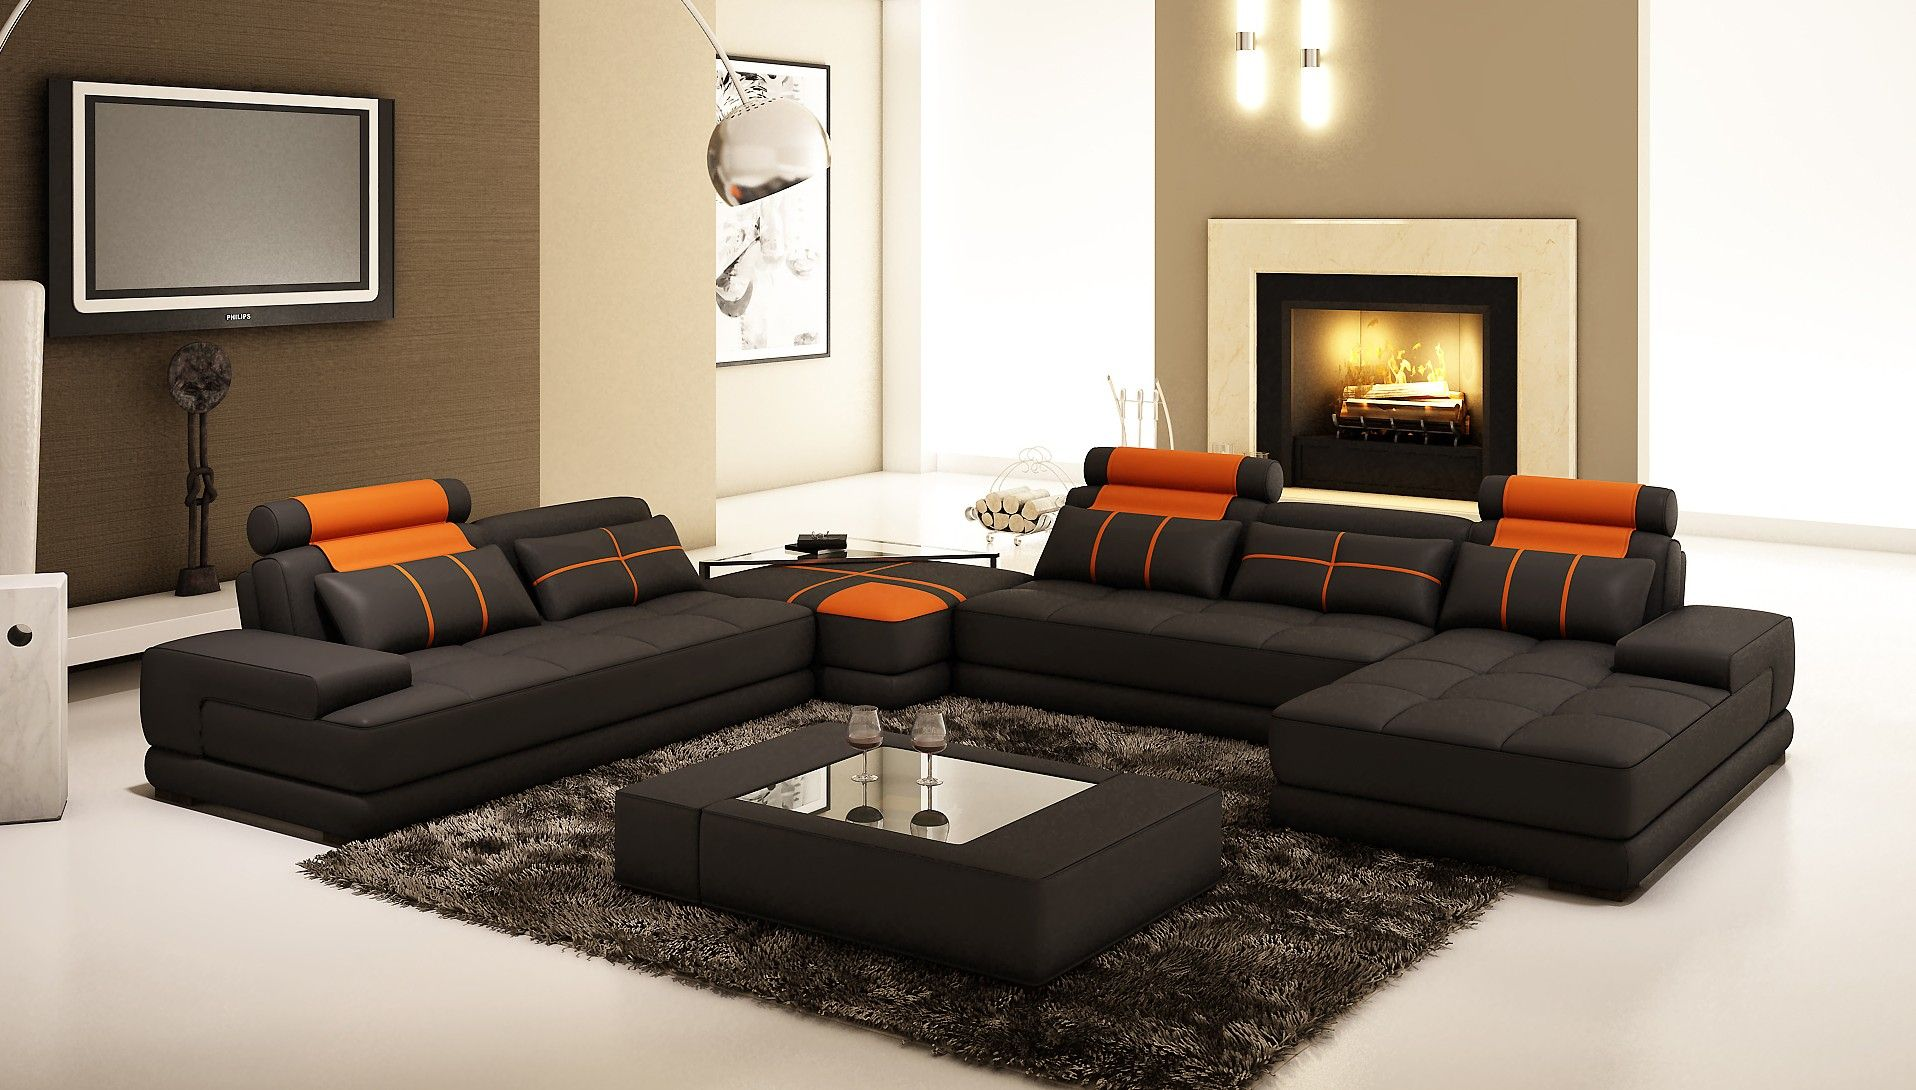 Living Room Design With Black Leather Sofa Alluring Ev5004  Диваны   Pinterest  Orange Leather Sofas Design Decoration